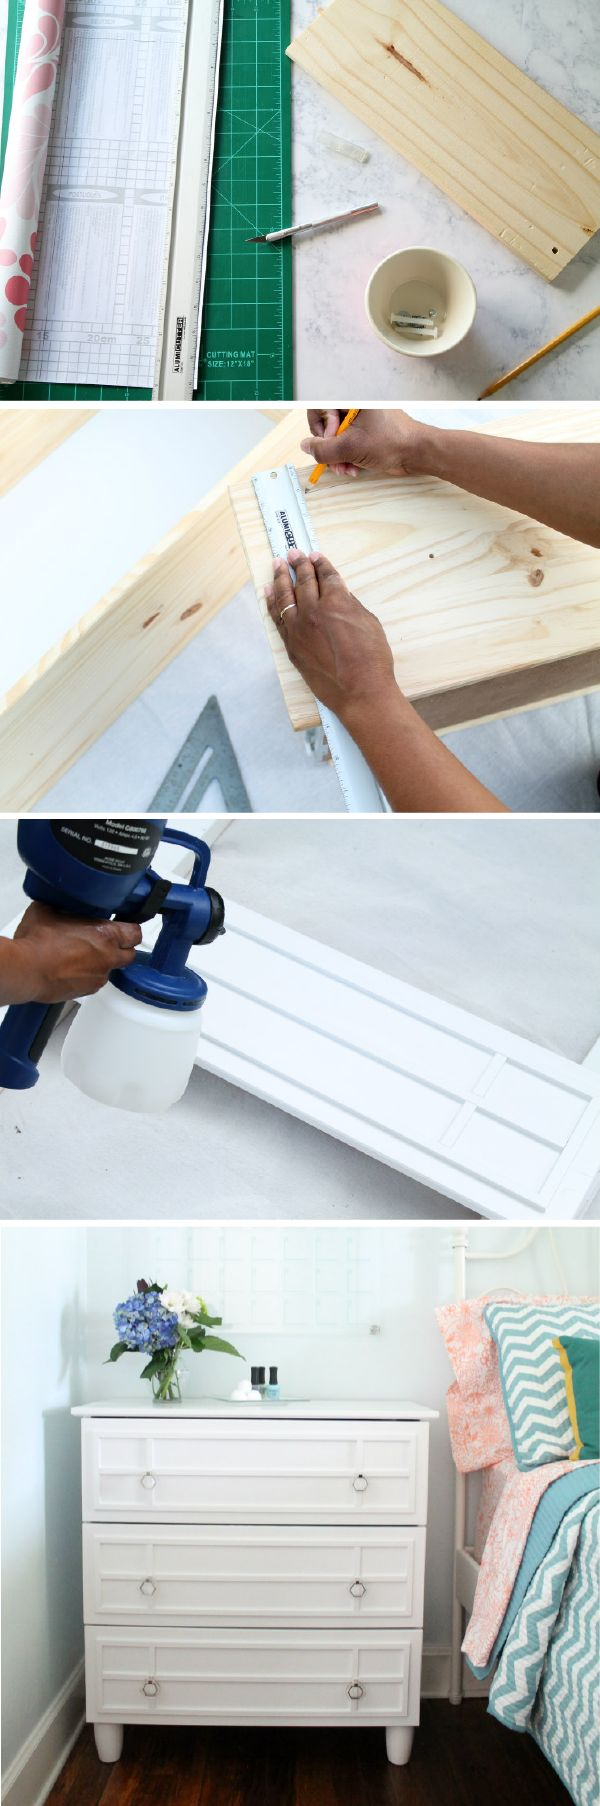 Breathe new life into a small unfinished dresser by adding moulding and some brand new modern hardware. This DIY home decor tutorial will show you just how to create this gorgeous piece of furniture for your bedroom. All you need is some moulding, white paint, and a bit of elbow grease.